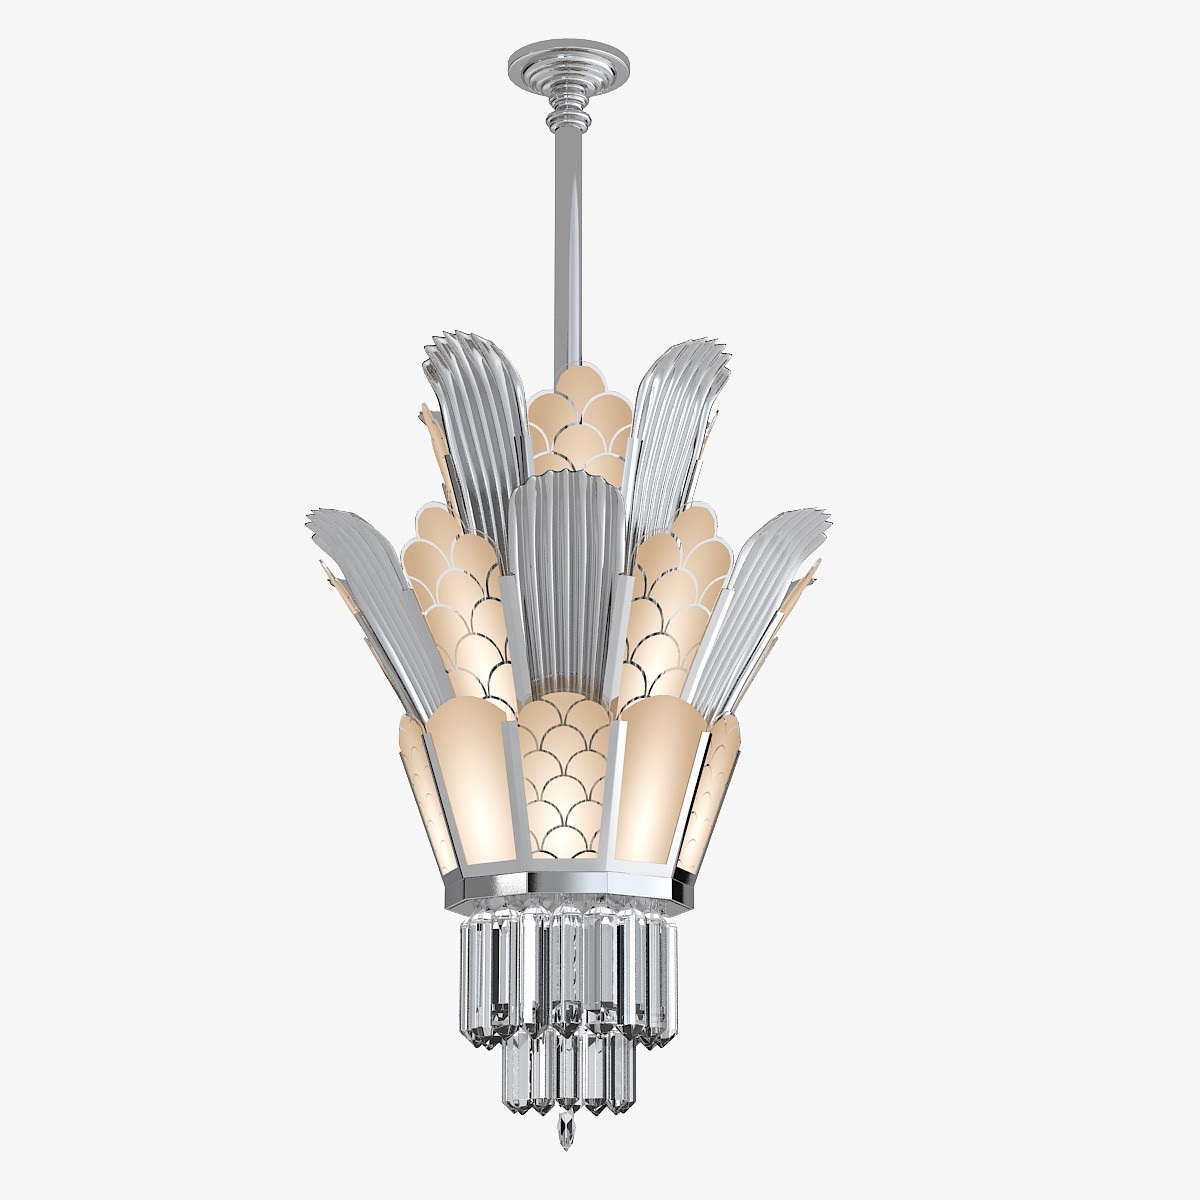 Model Andy Torton Art Deco Throughout Art Deco Chandelier (#11 of 12)